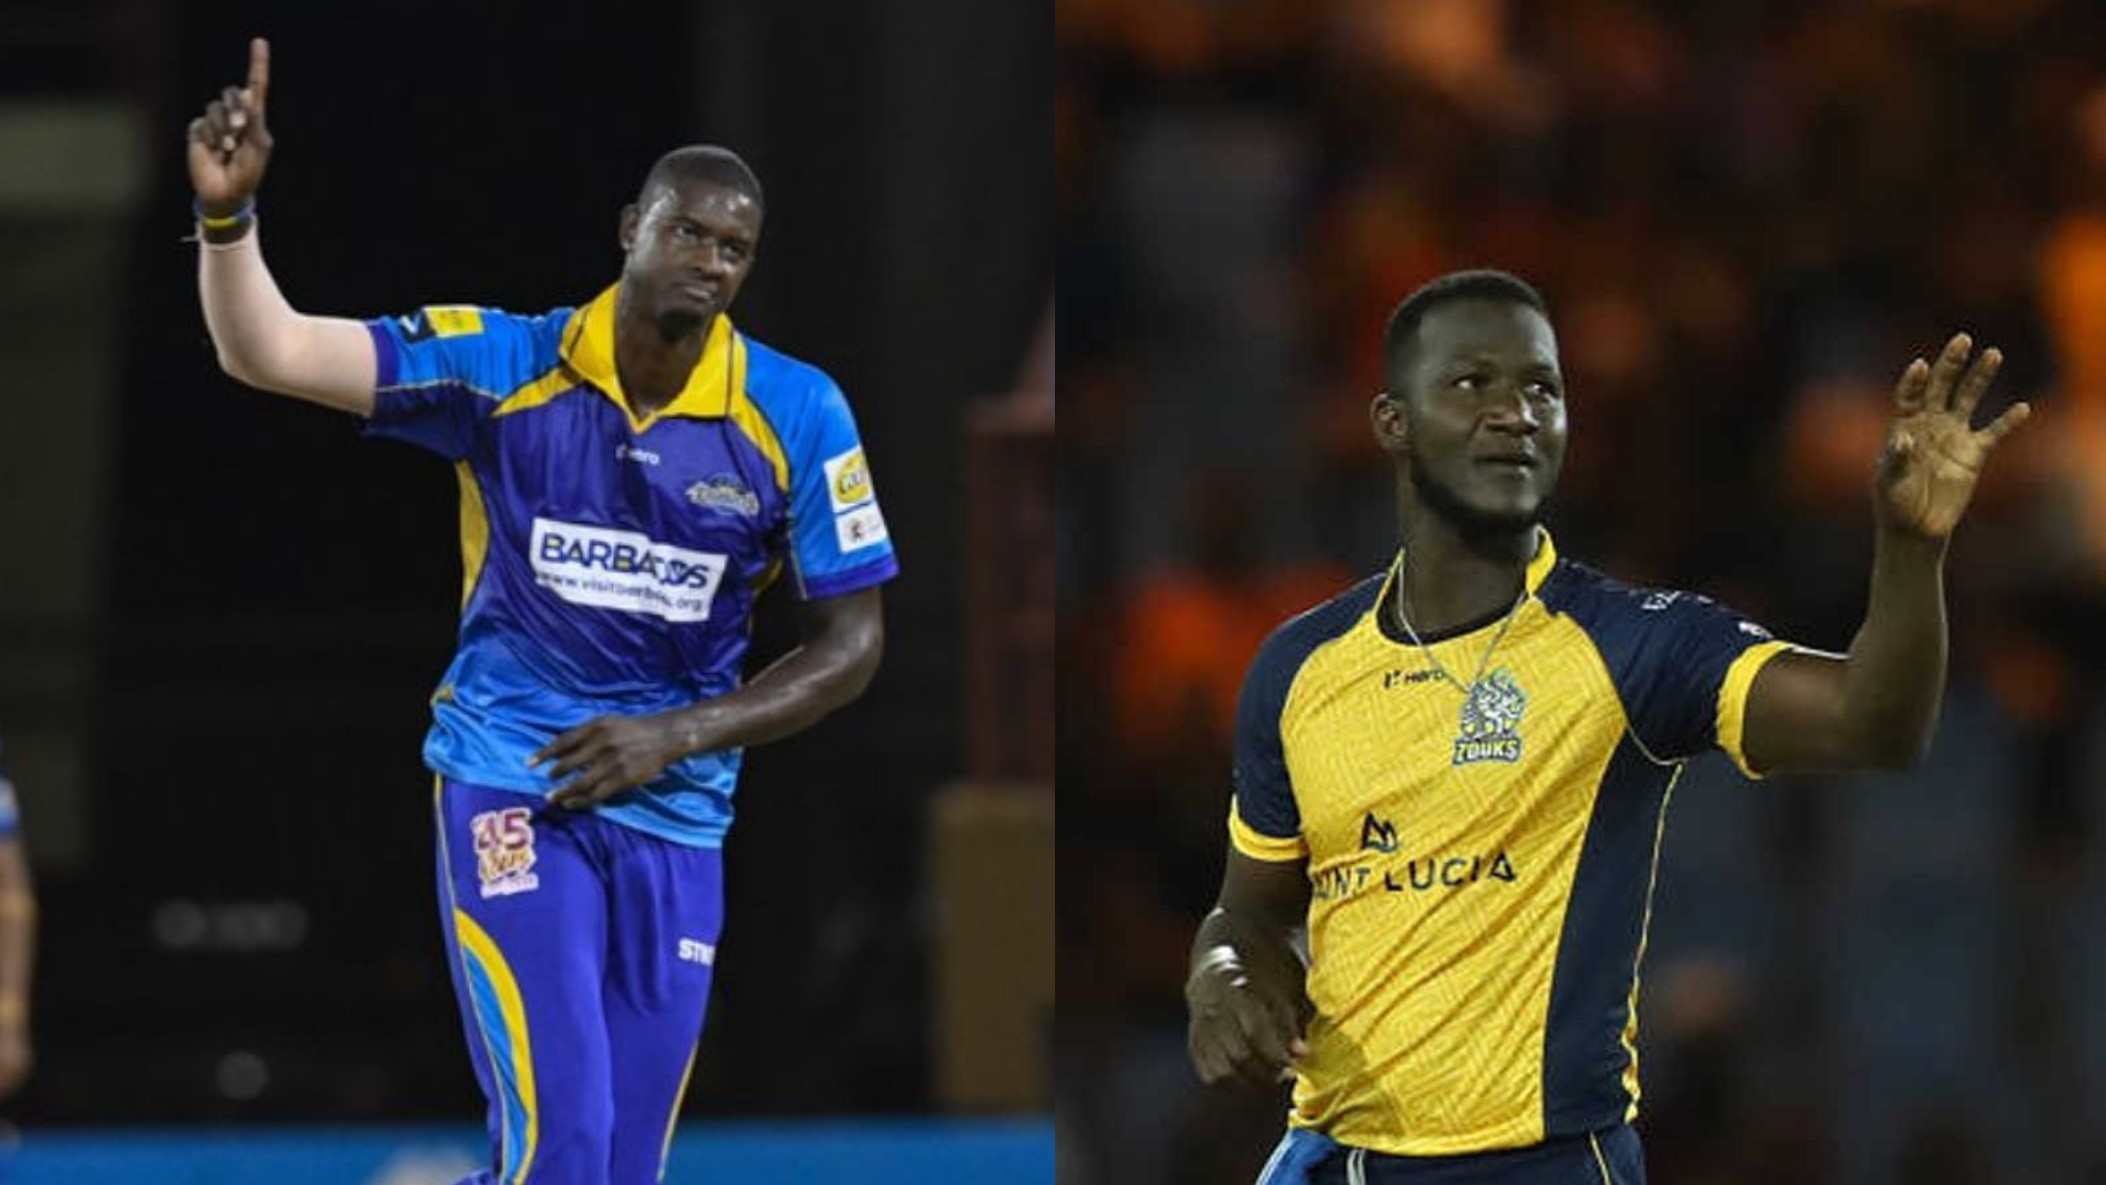 CPL 2020: Match 19, Barbados Tridents v St. Lucia Zouks – Fantasy Cricket Tips, Playing XIs, Pitch and Weather